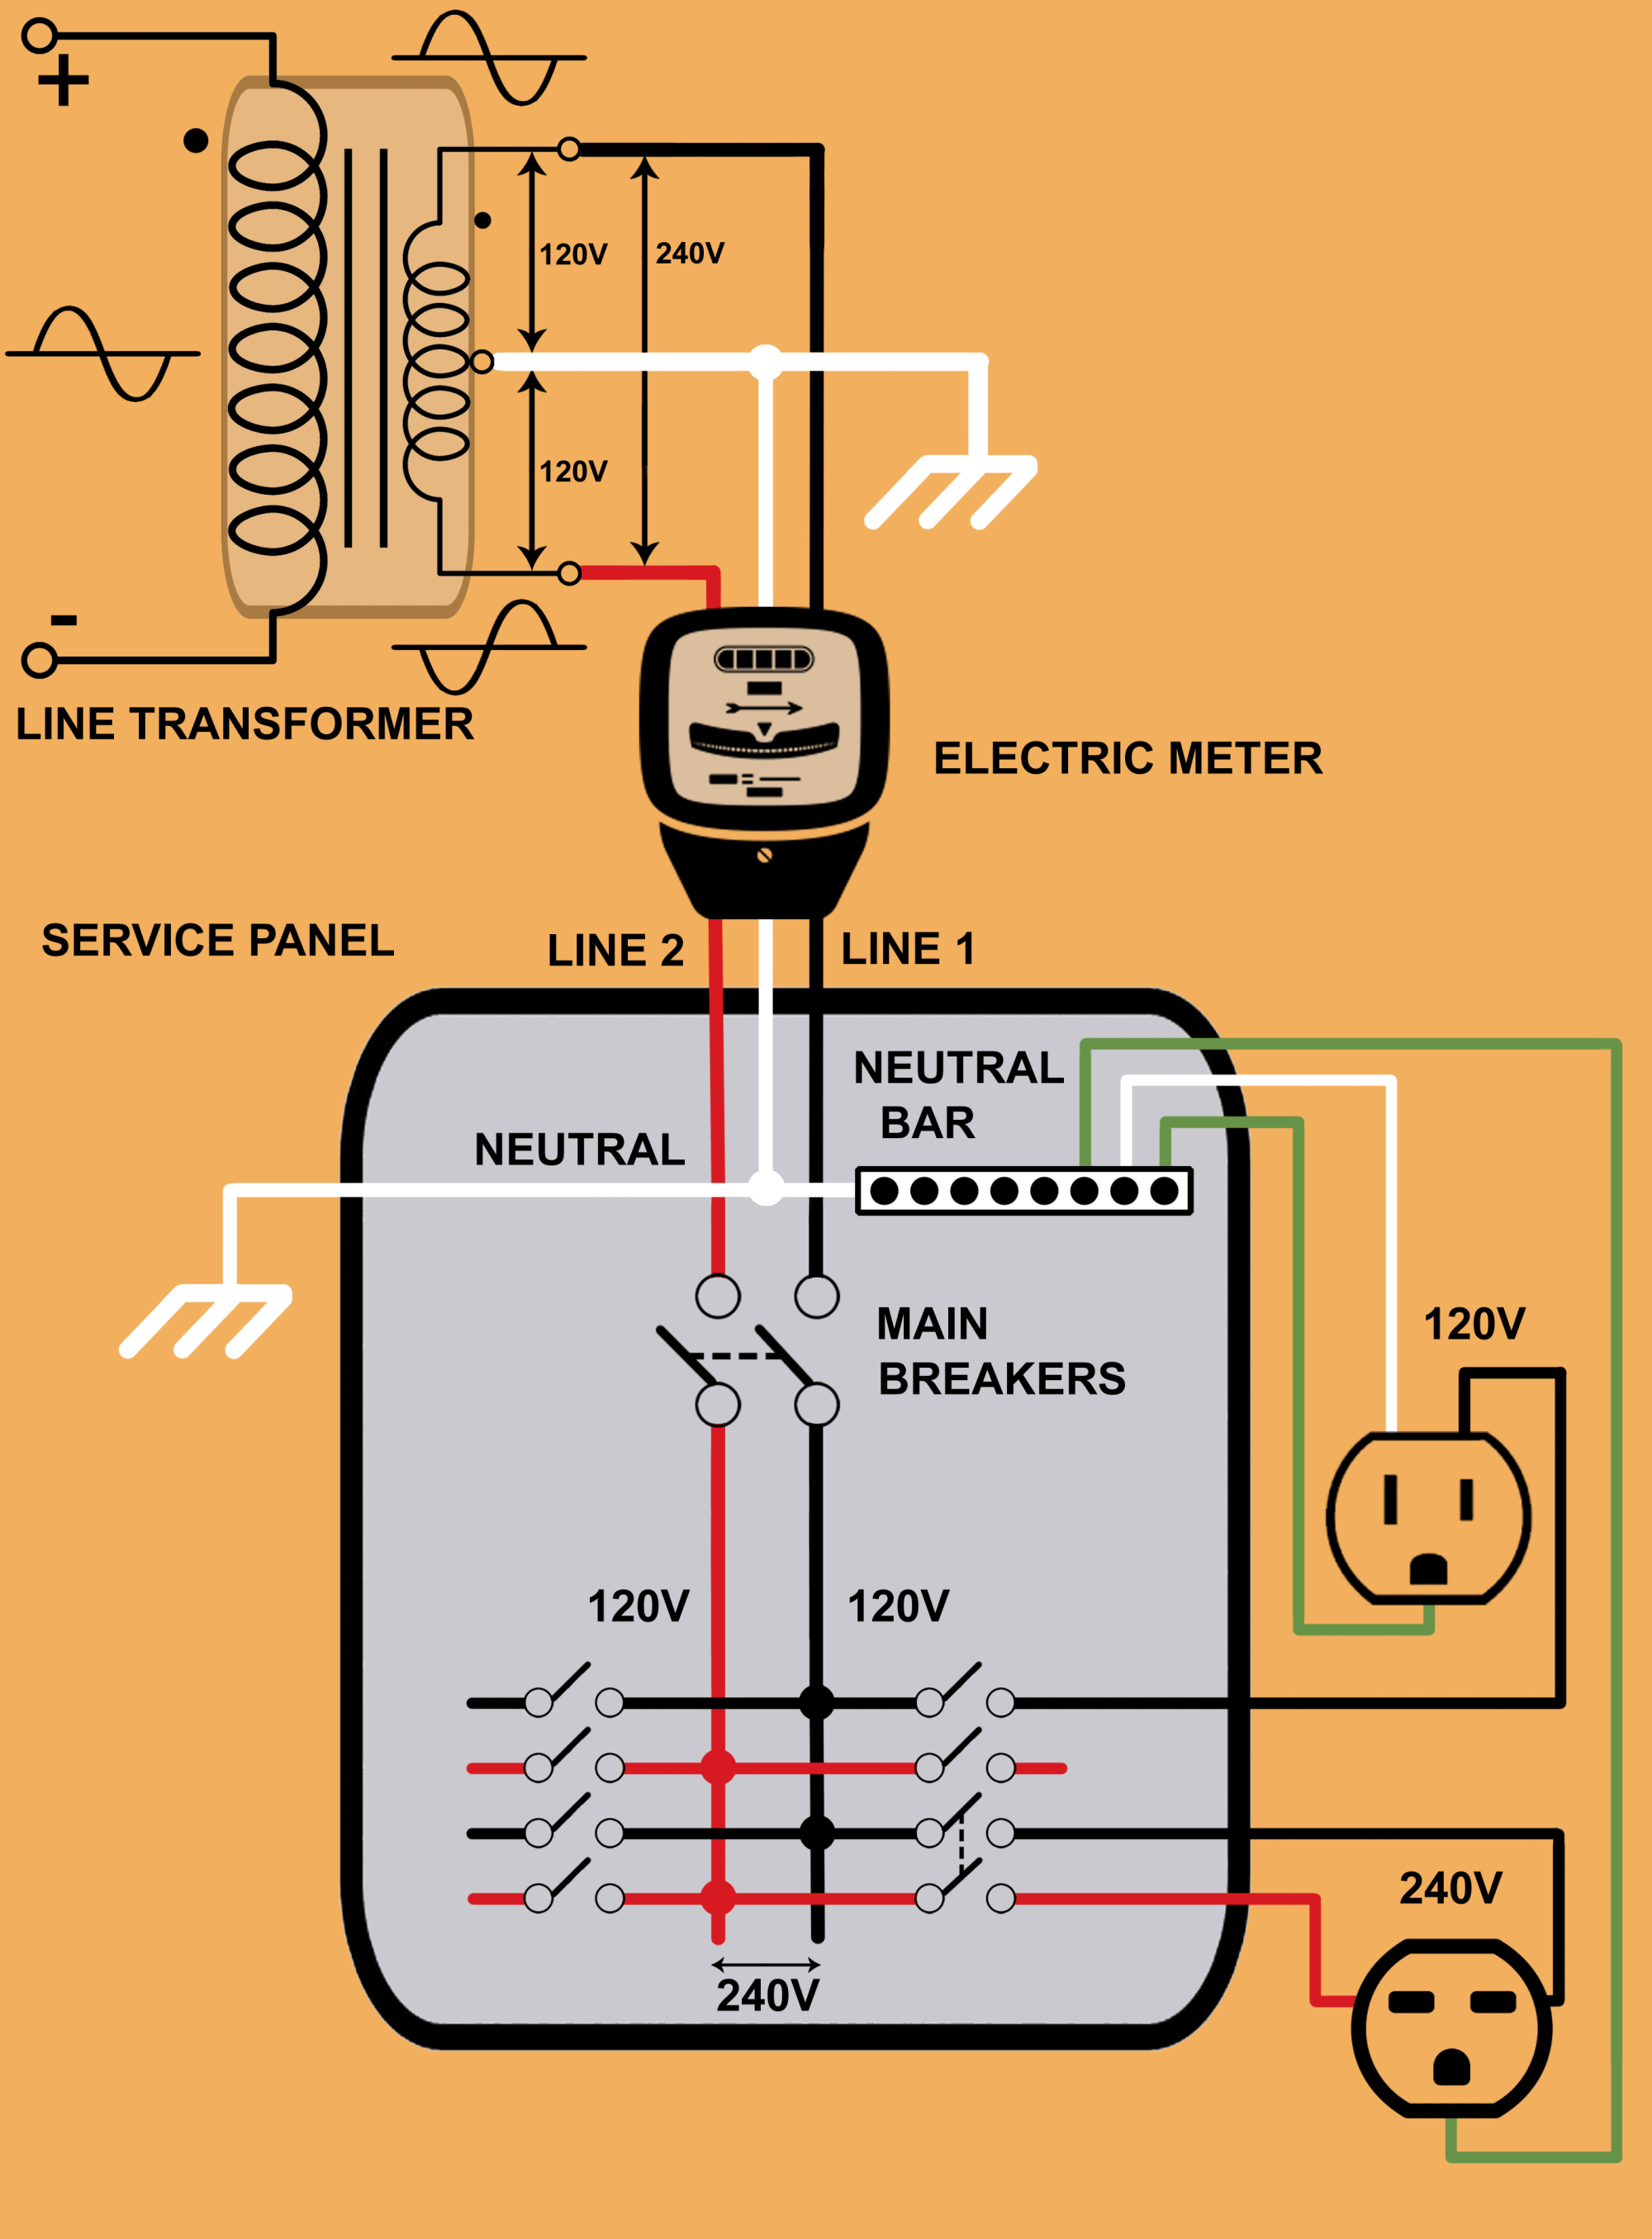 hight resolution of step down distribution transformer electric meter and service panel